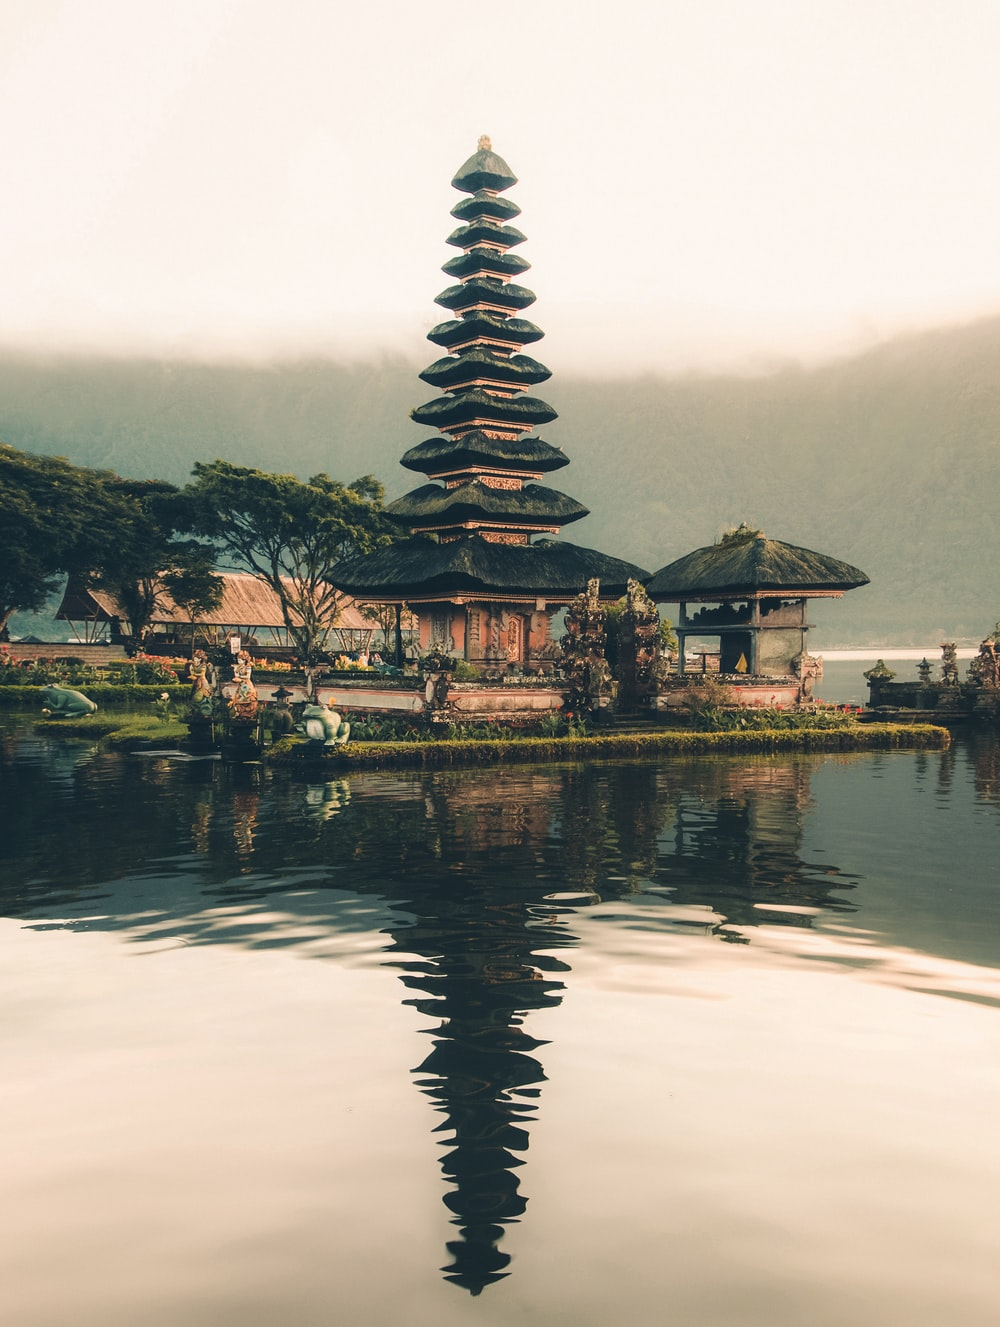 100+ Beautiful Bali Pictures | Download Free Images on Unsplash